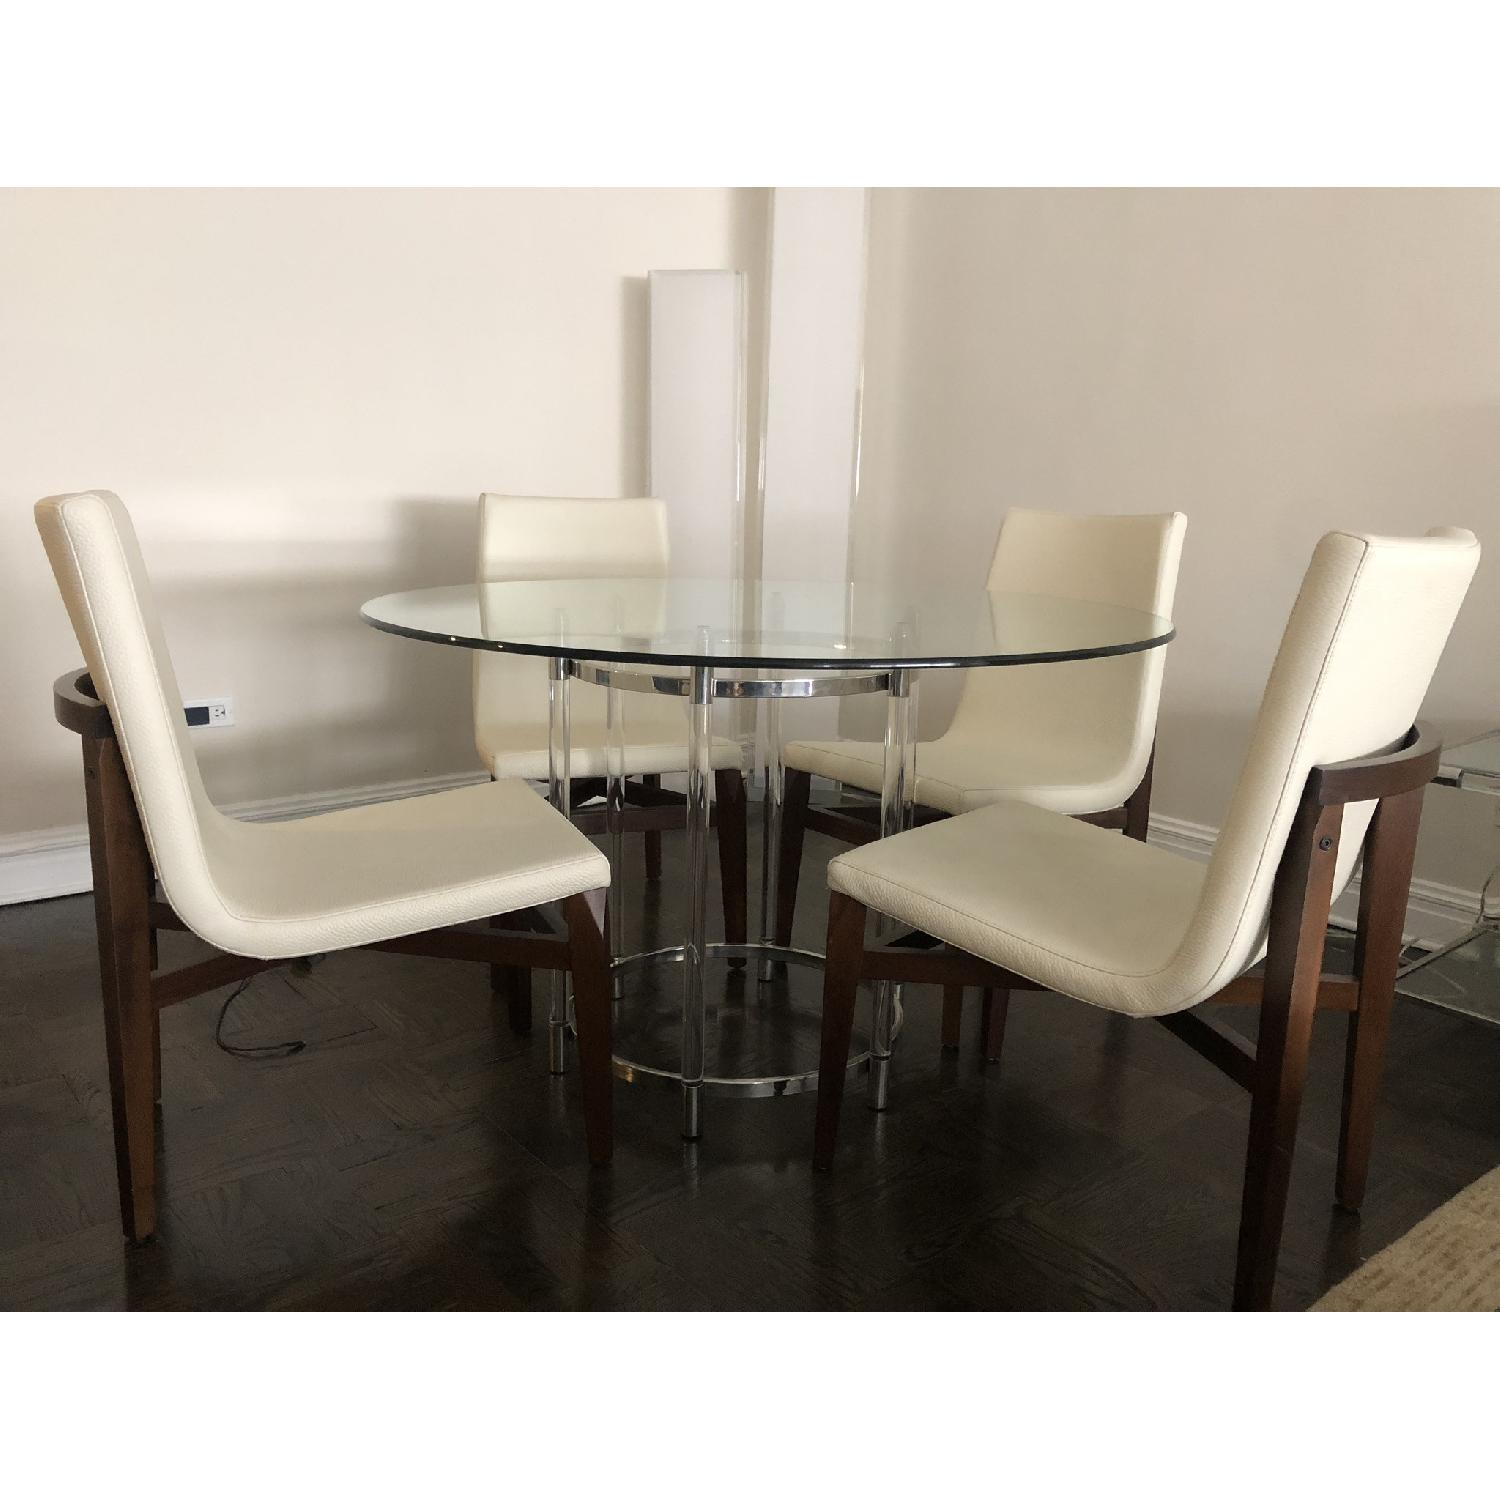 Glass Dining Table w/ 4 White Leather & Wood Dining Chairs - image-1